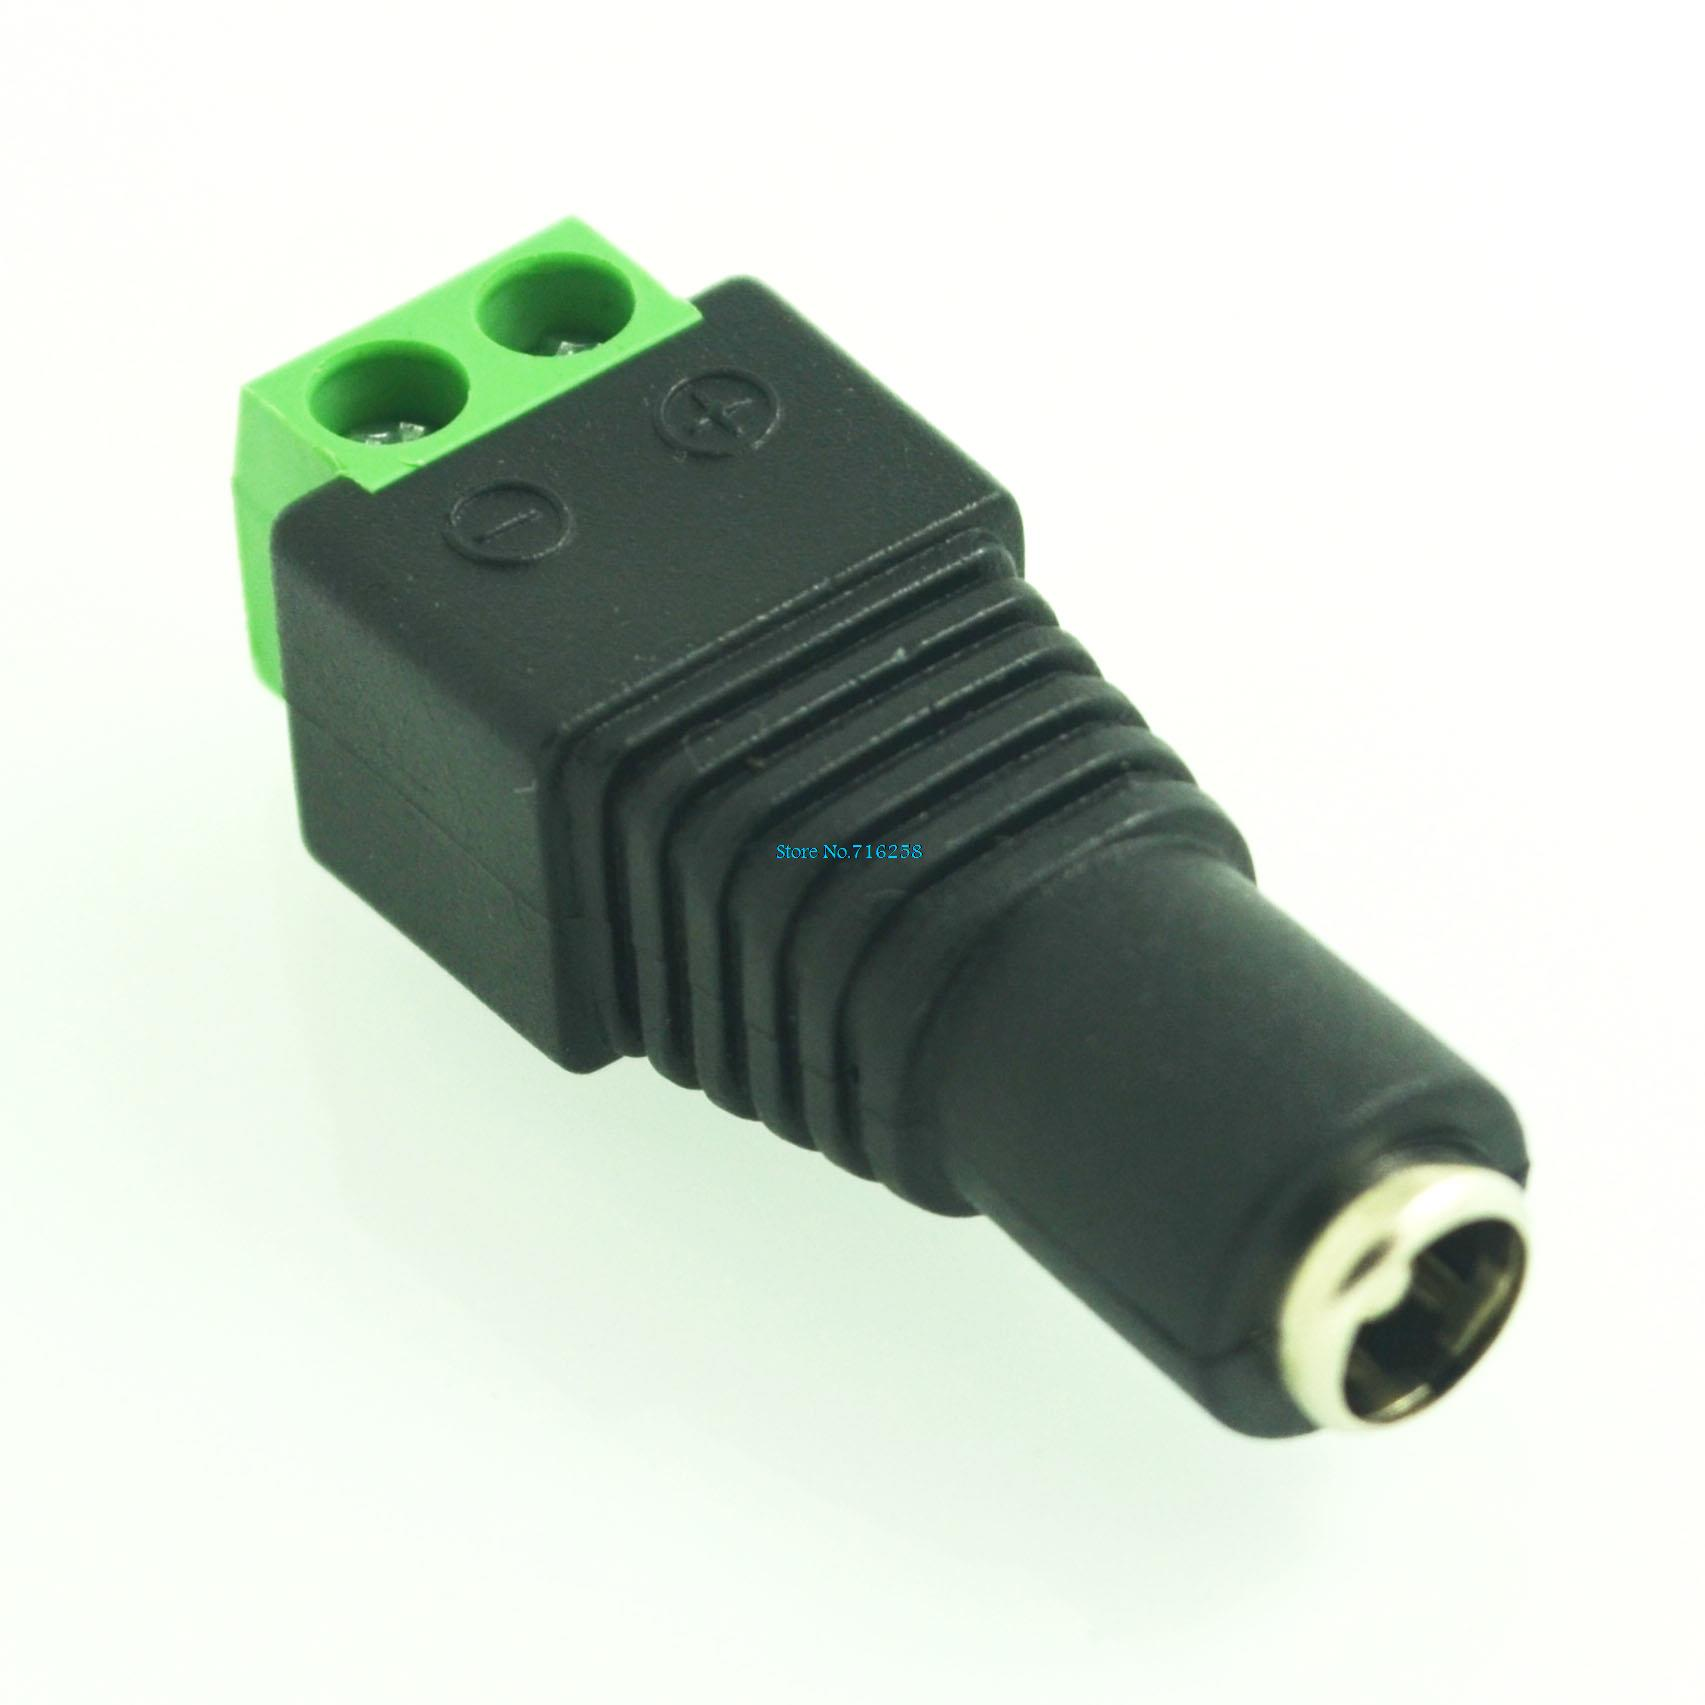 10Pcs 12V 2.1 X 5.5mm DC Power Female Plug Jack Adapter Connector Plug For CCTV Single Color LED Light